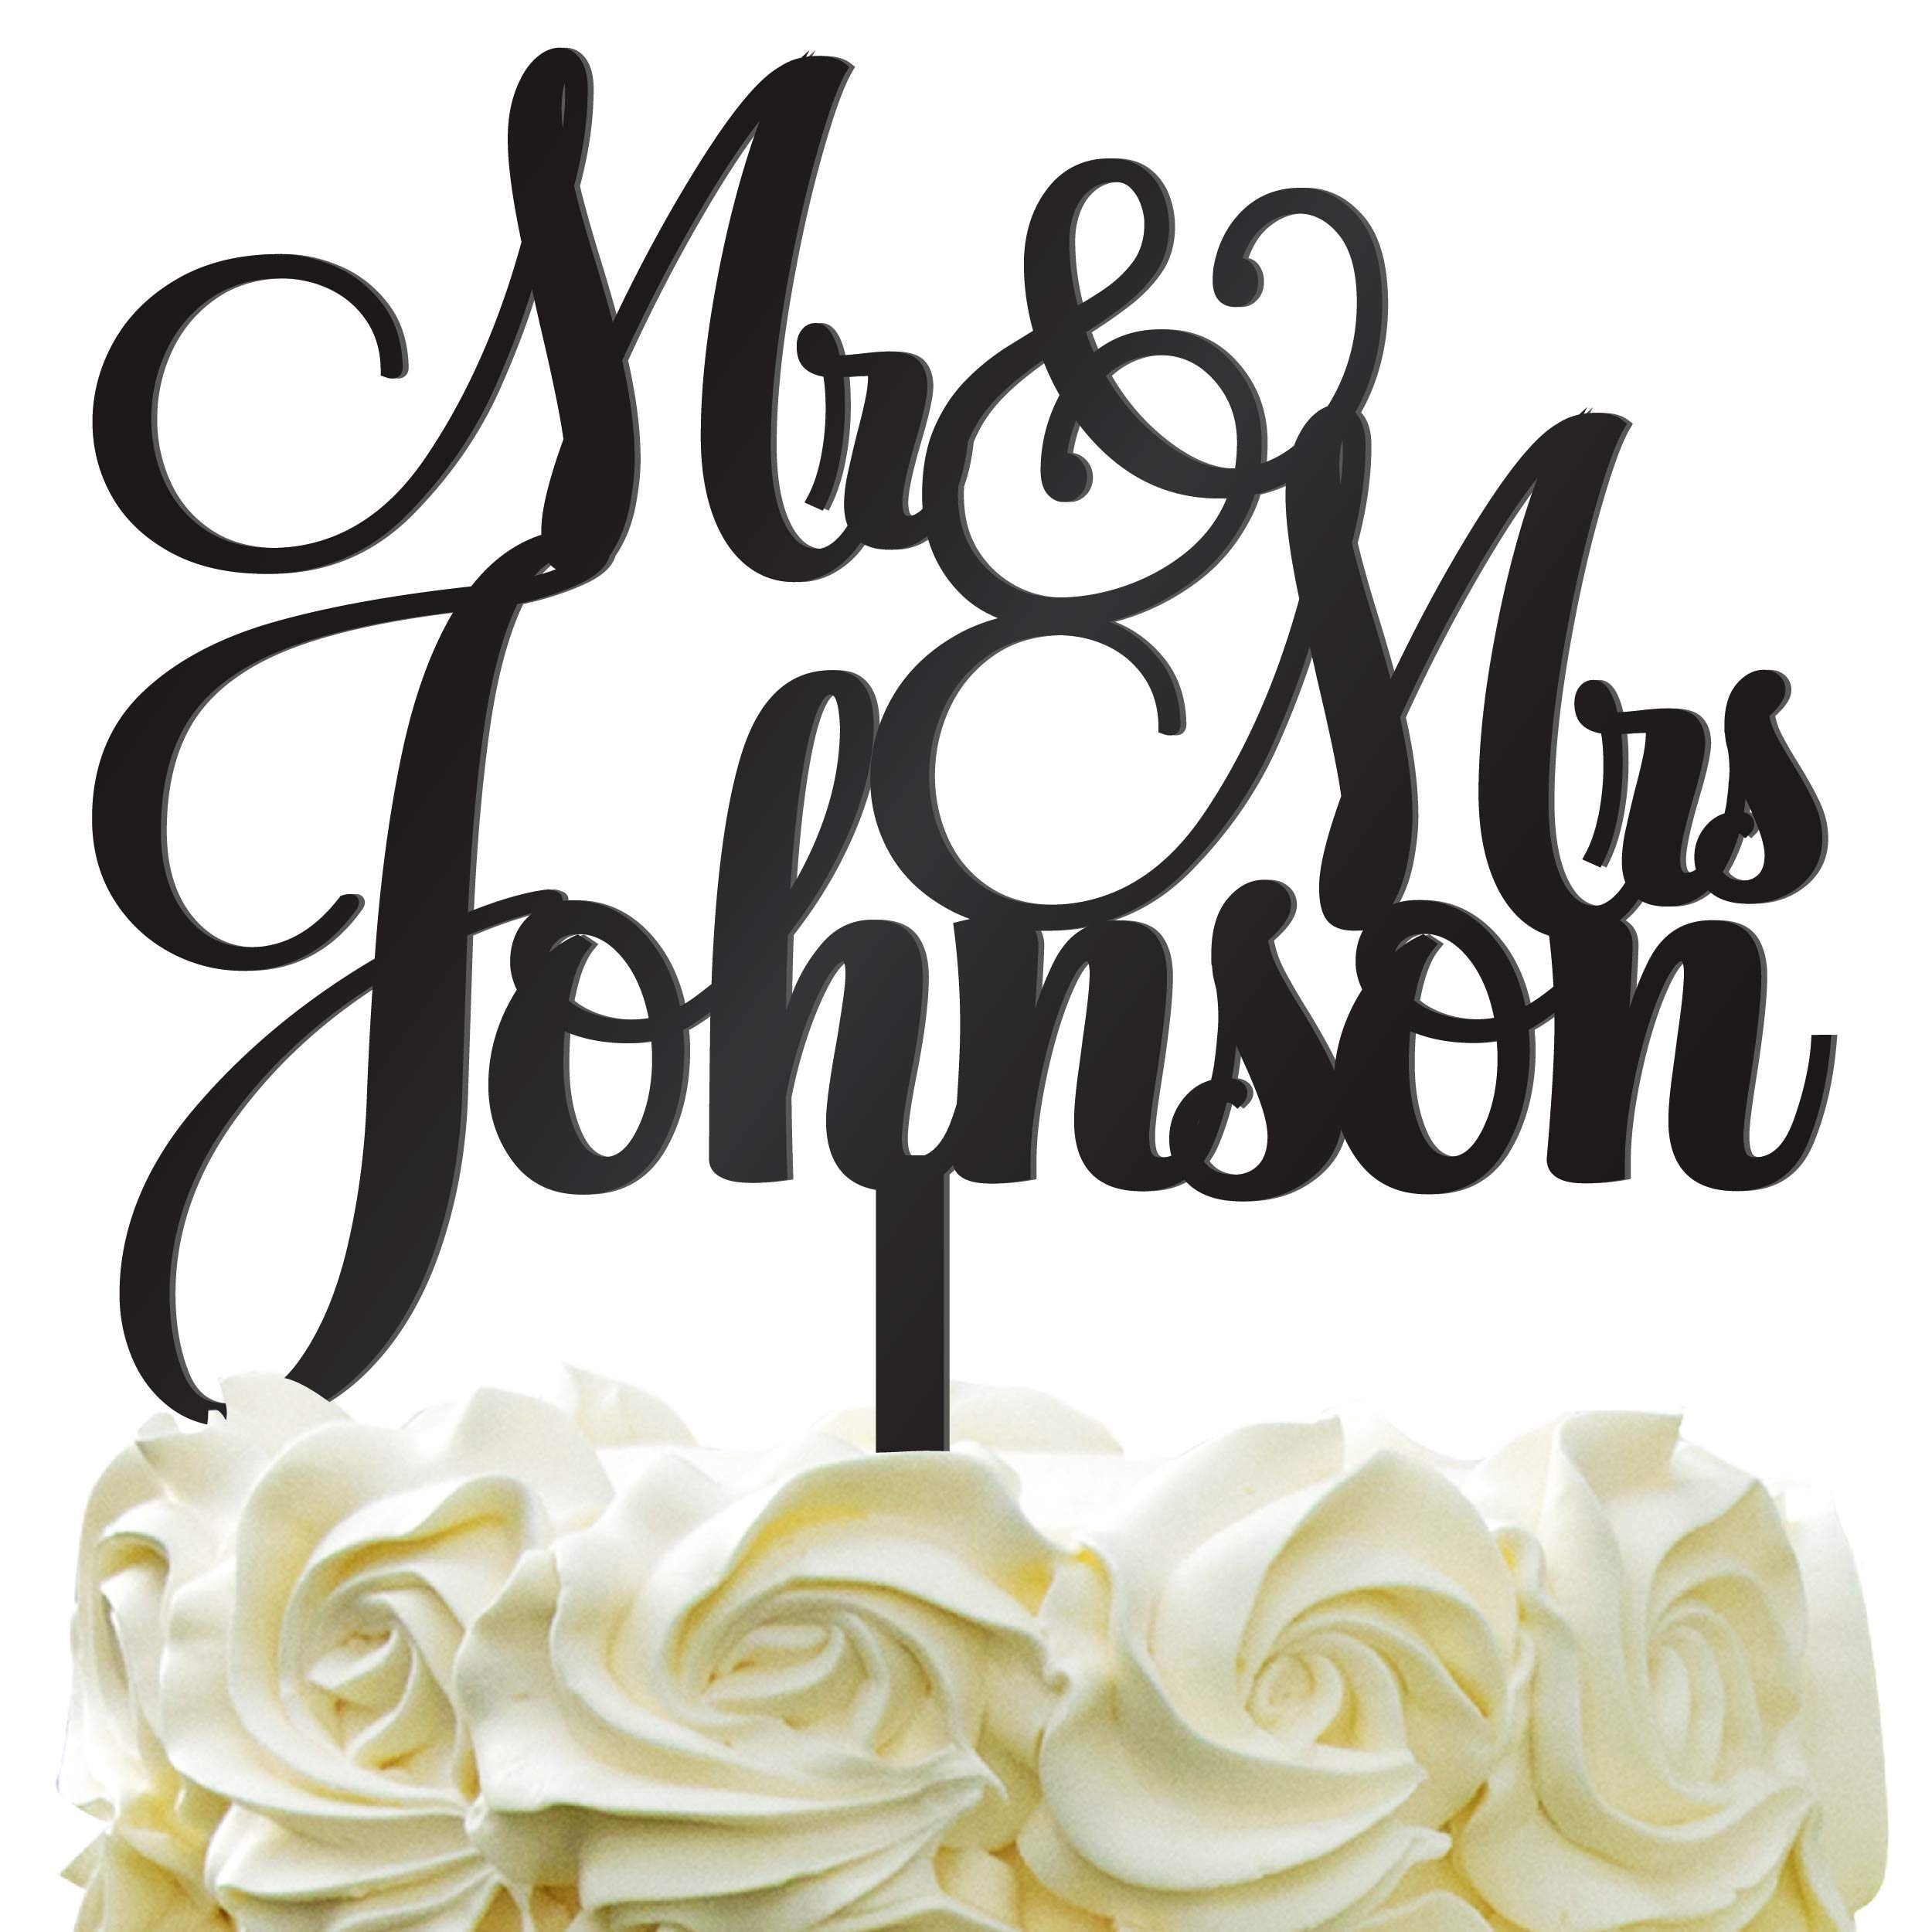 Personalized Wedding Cake Topper - Wedding Cake Decoration Customized Mr & Mrs Last Name To Be Bride & Groom script fontColor Acrylic by PersonalizedGiftLAnd (Image #1)